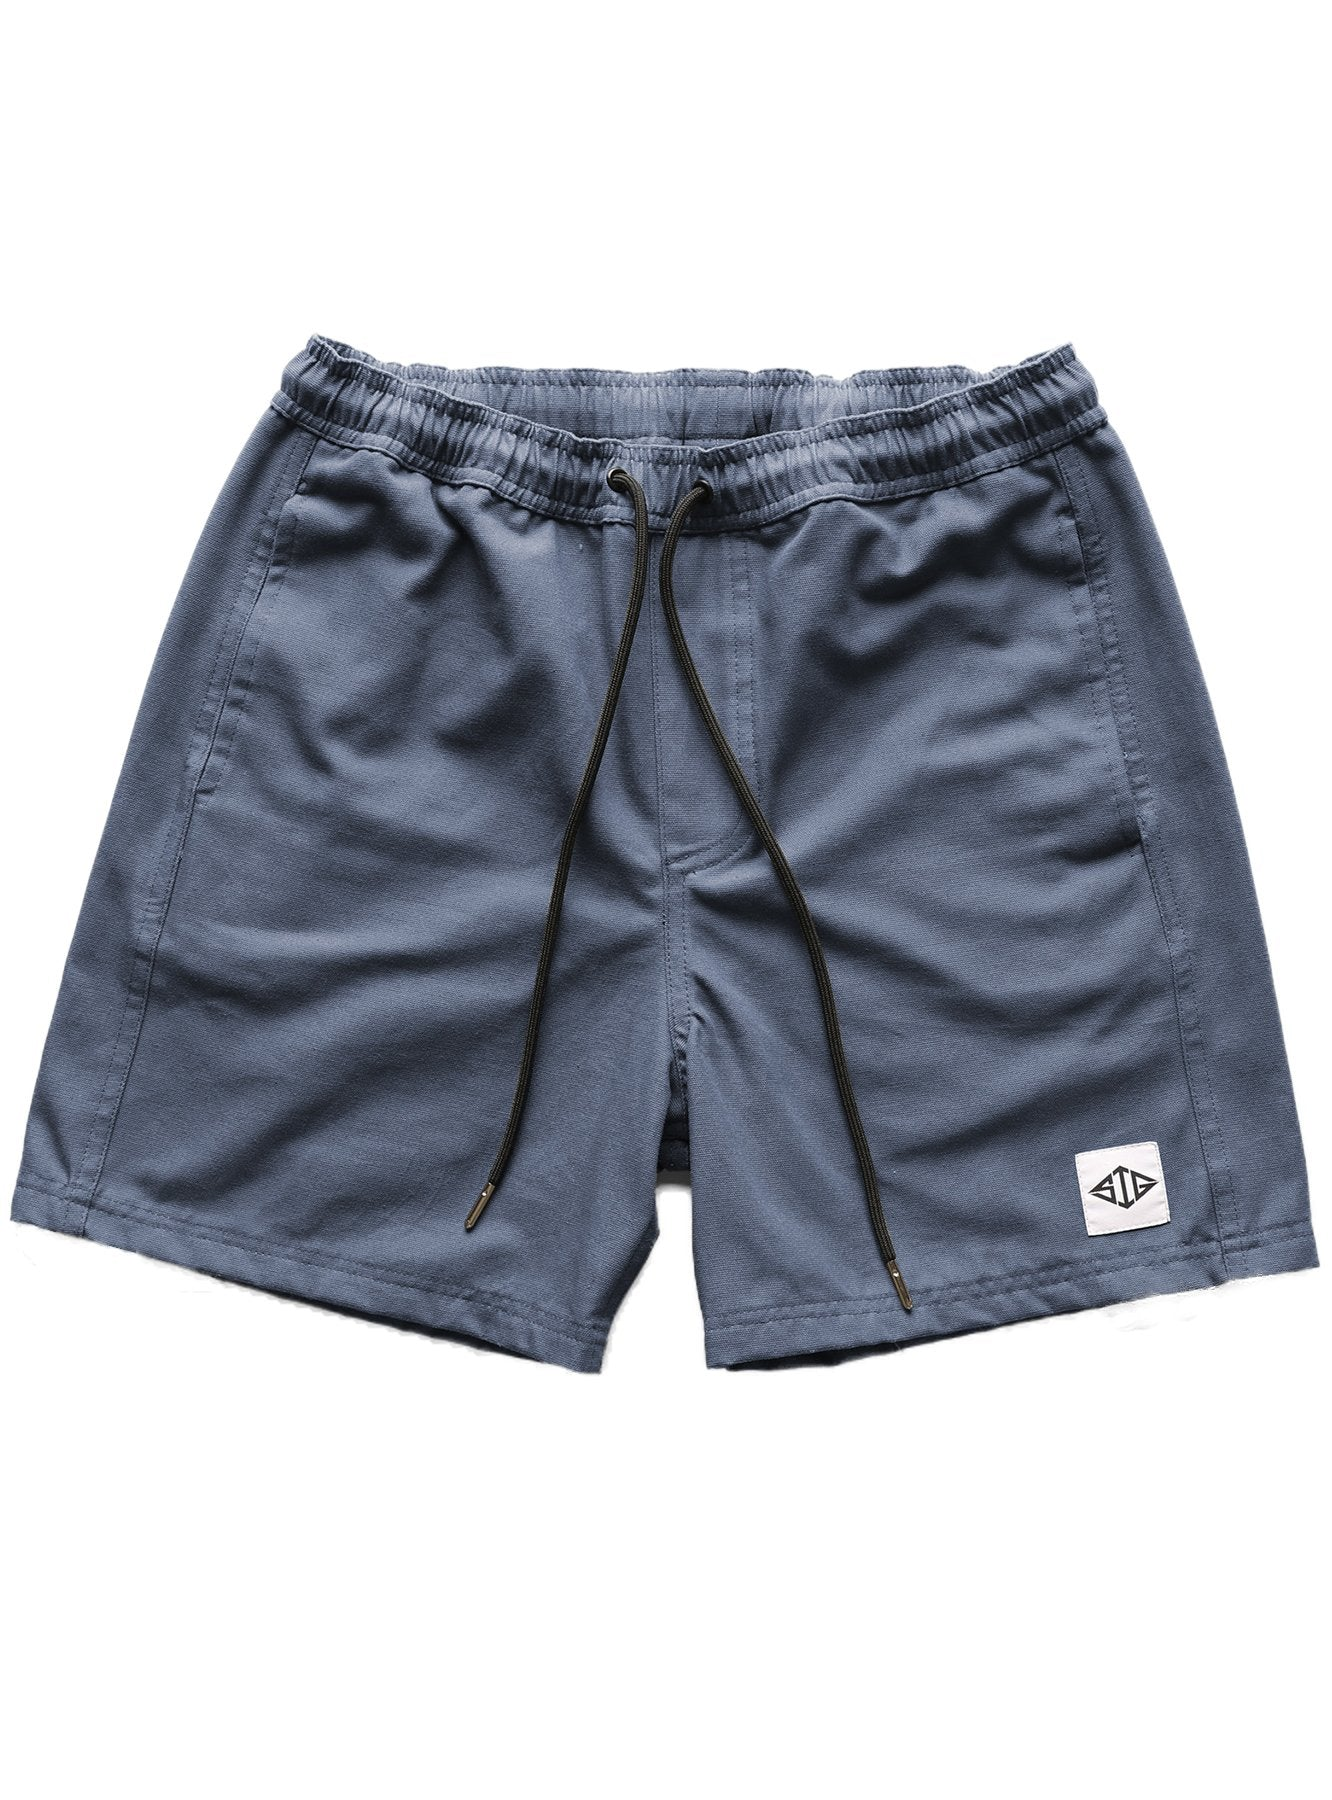 Ditch the leg-prisons this spring; Signature's giving you go-to shorts